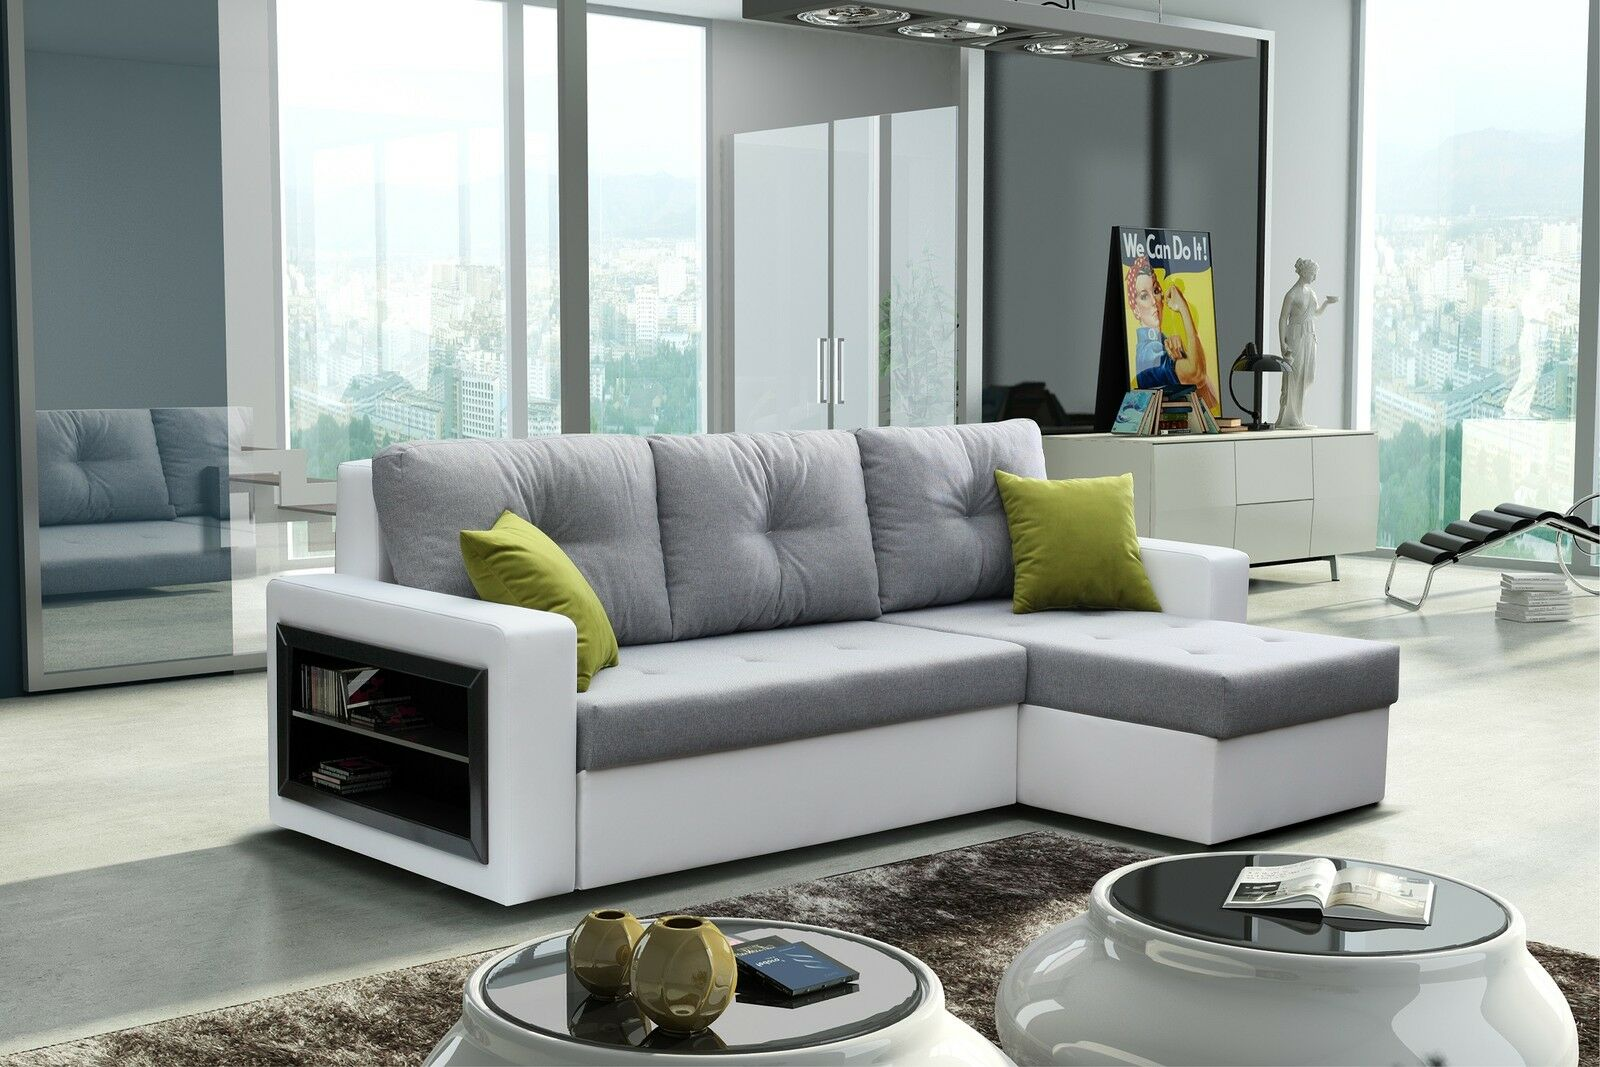 wohnlandschaft eckgarnitur sofa forte mit schlaffunktion bettkasten schrank top eur 479 00. Black Bedroom Furniture Sets. Home Design Ideas